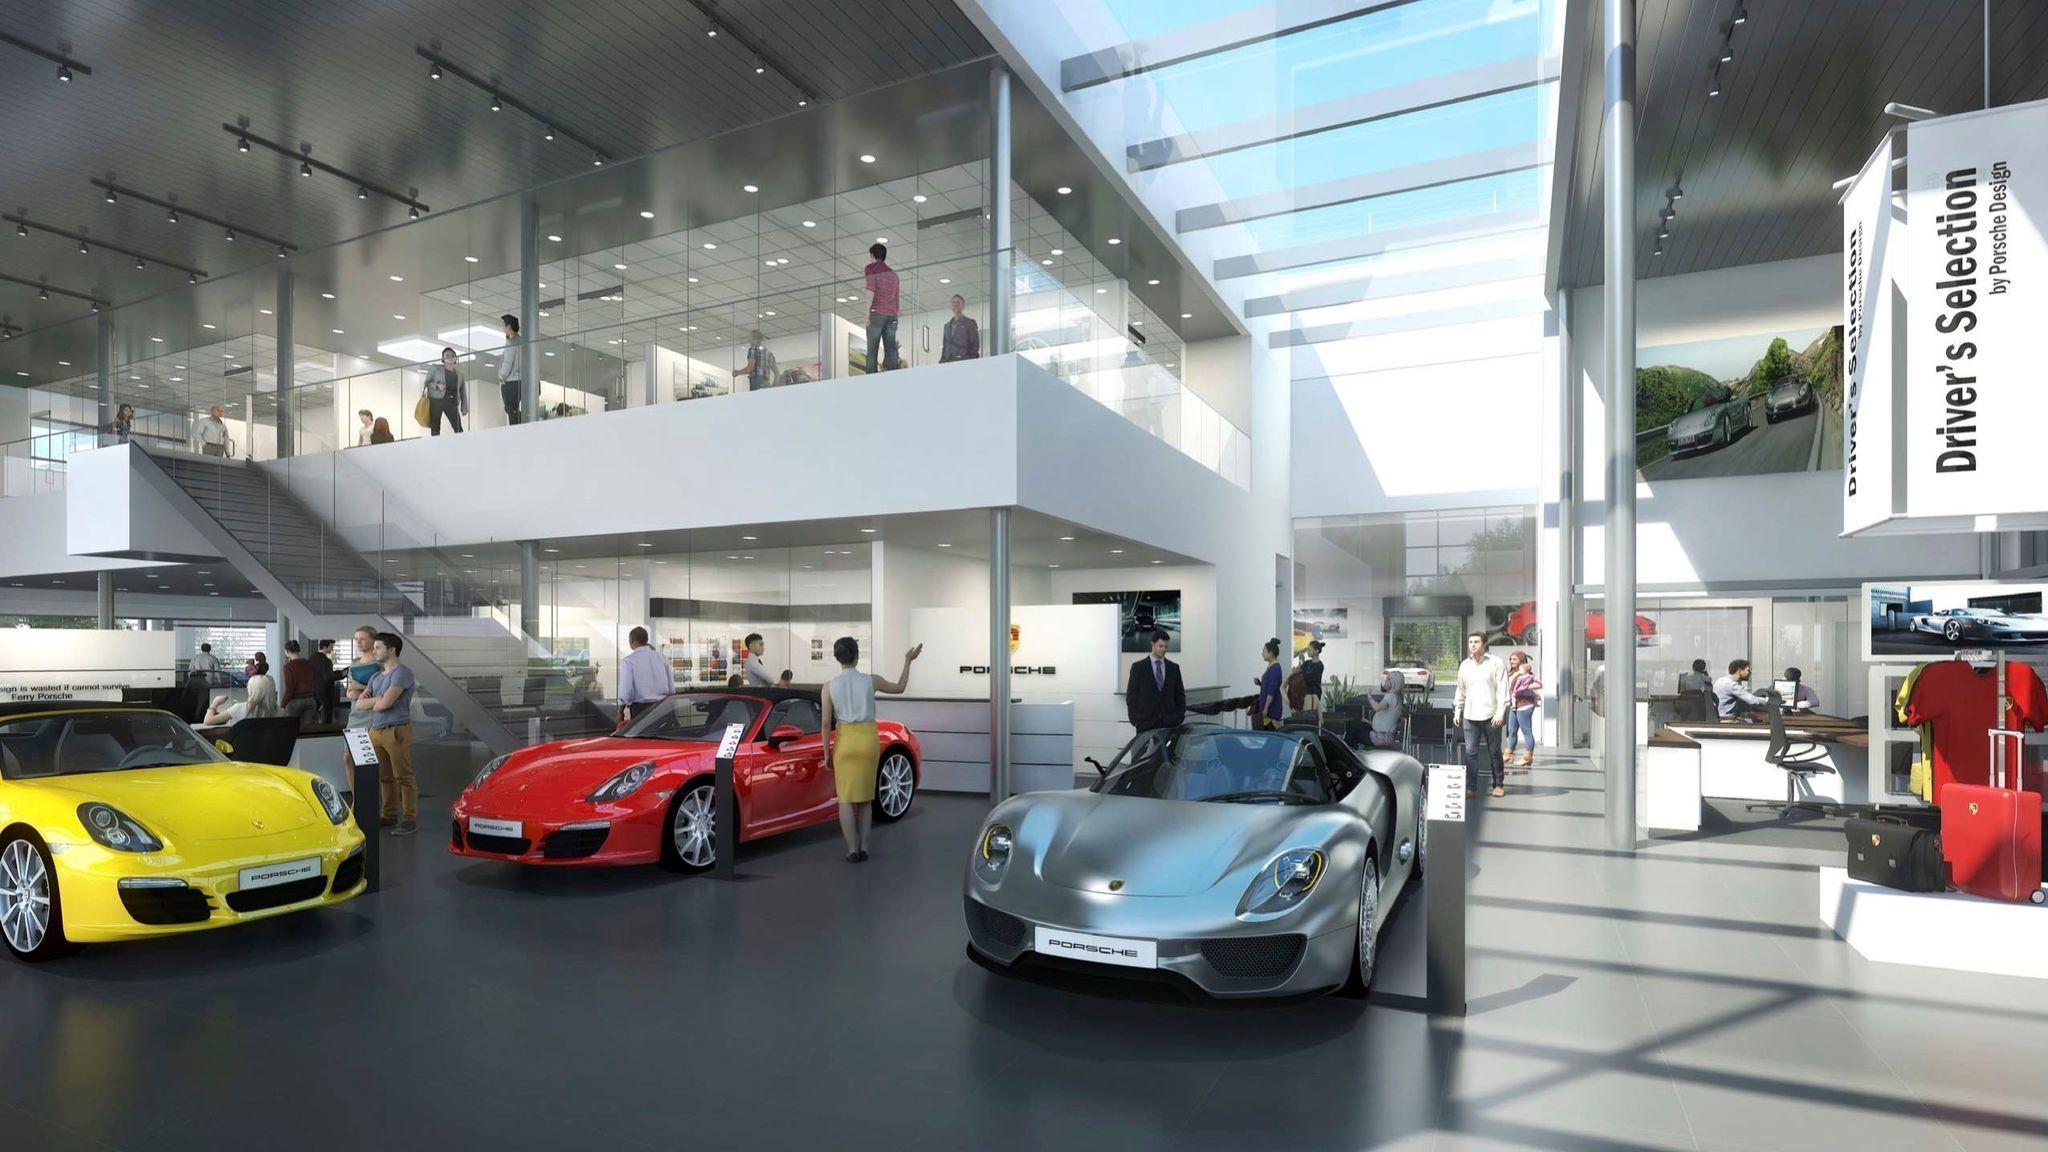 millenia clinches luxury car hub with ferrari porsche lexus orlando sentinel. Black Bedroom Furniture Sets. Home Design Ideas